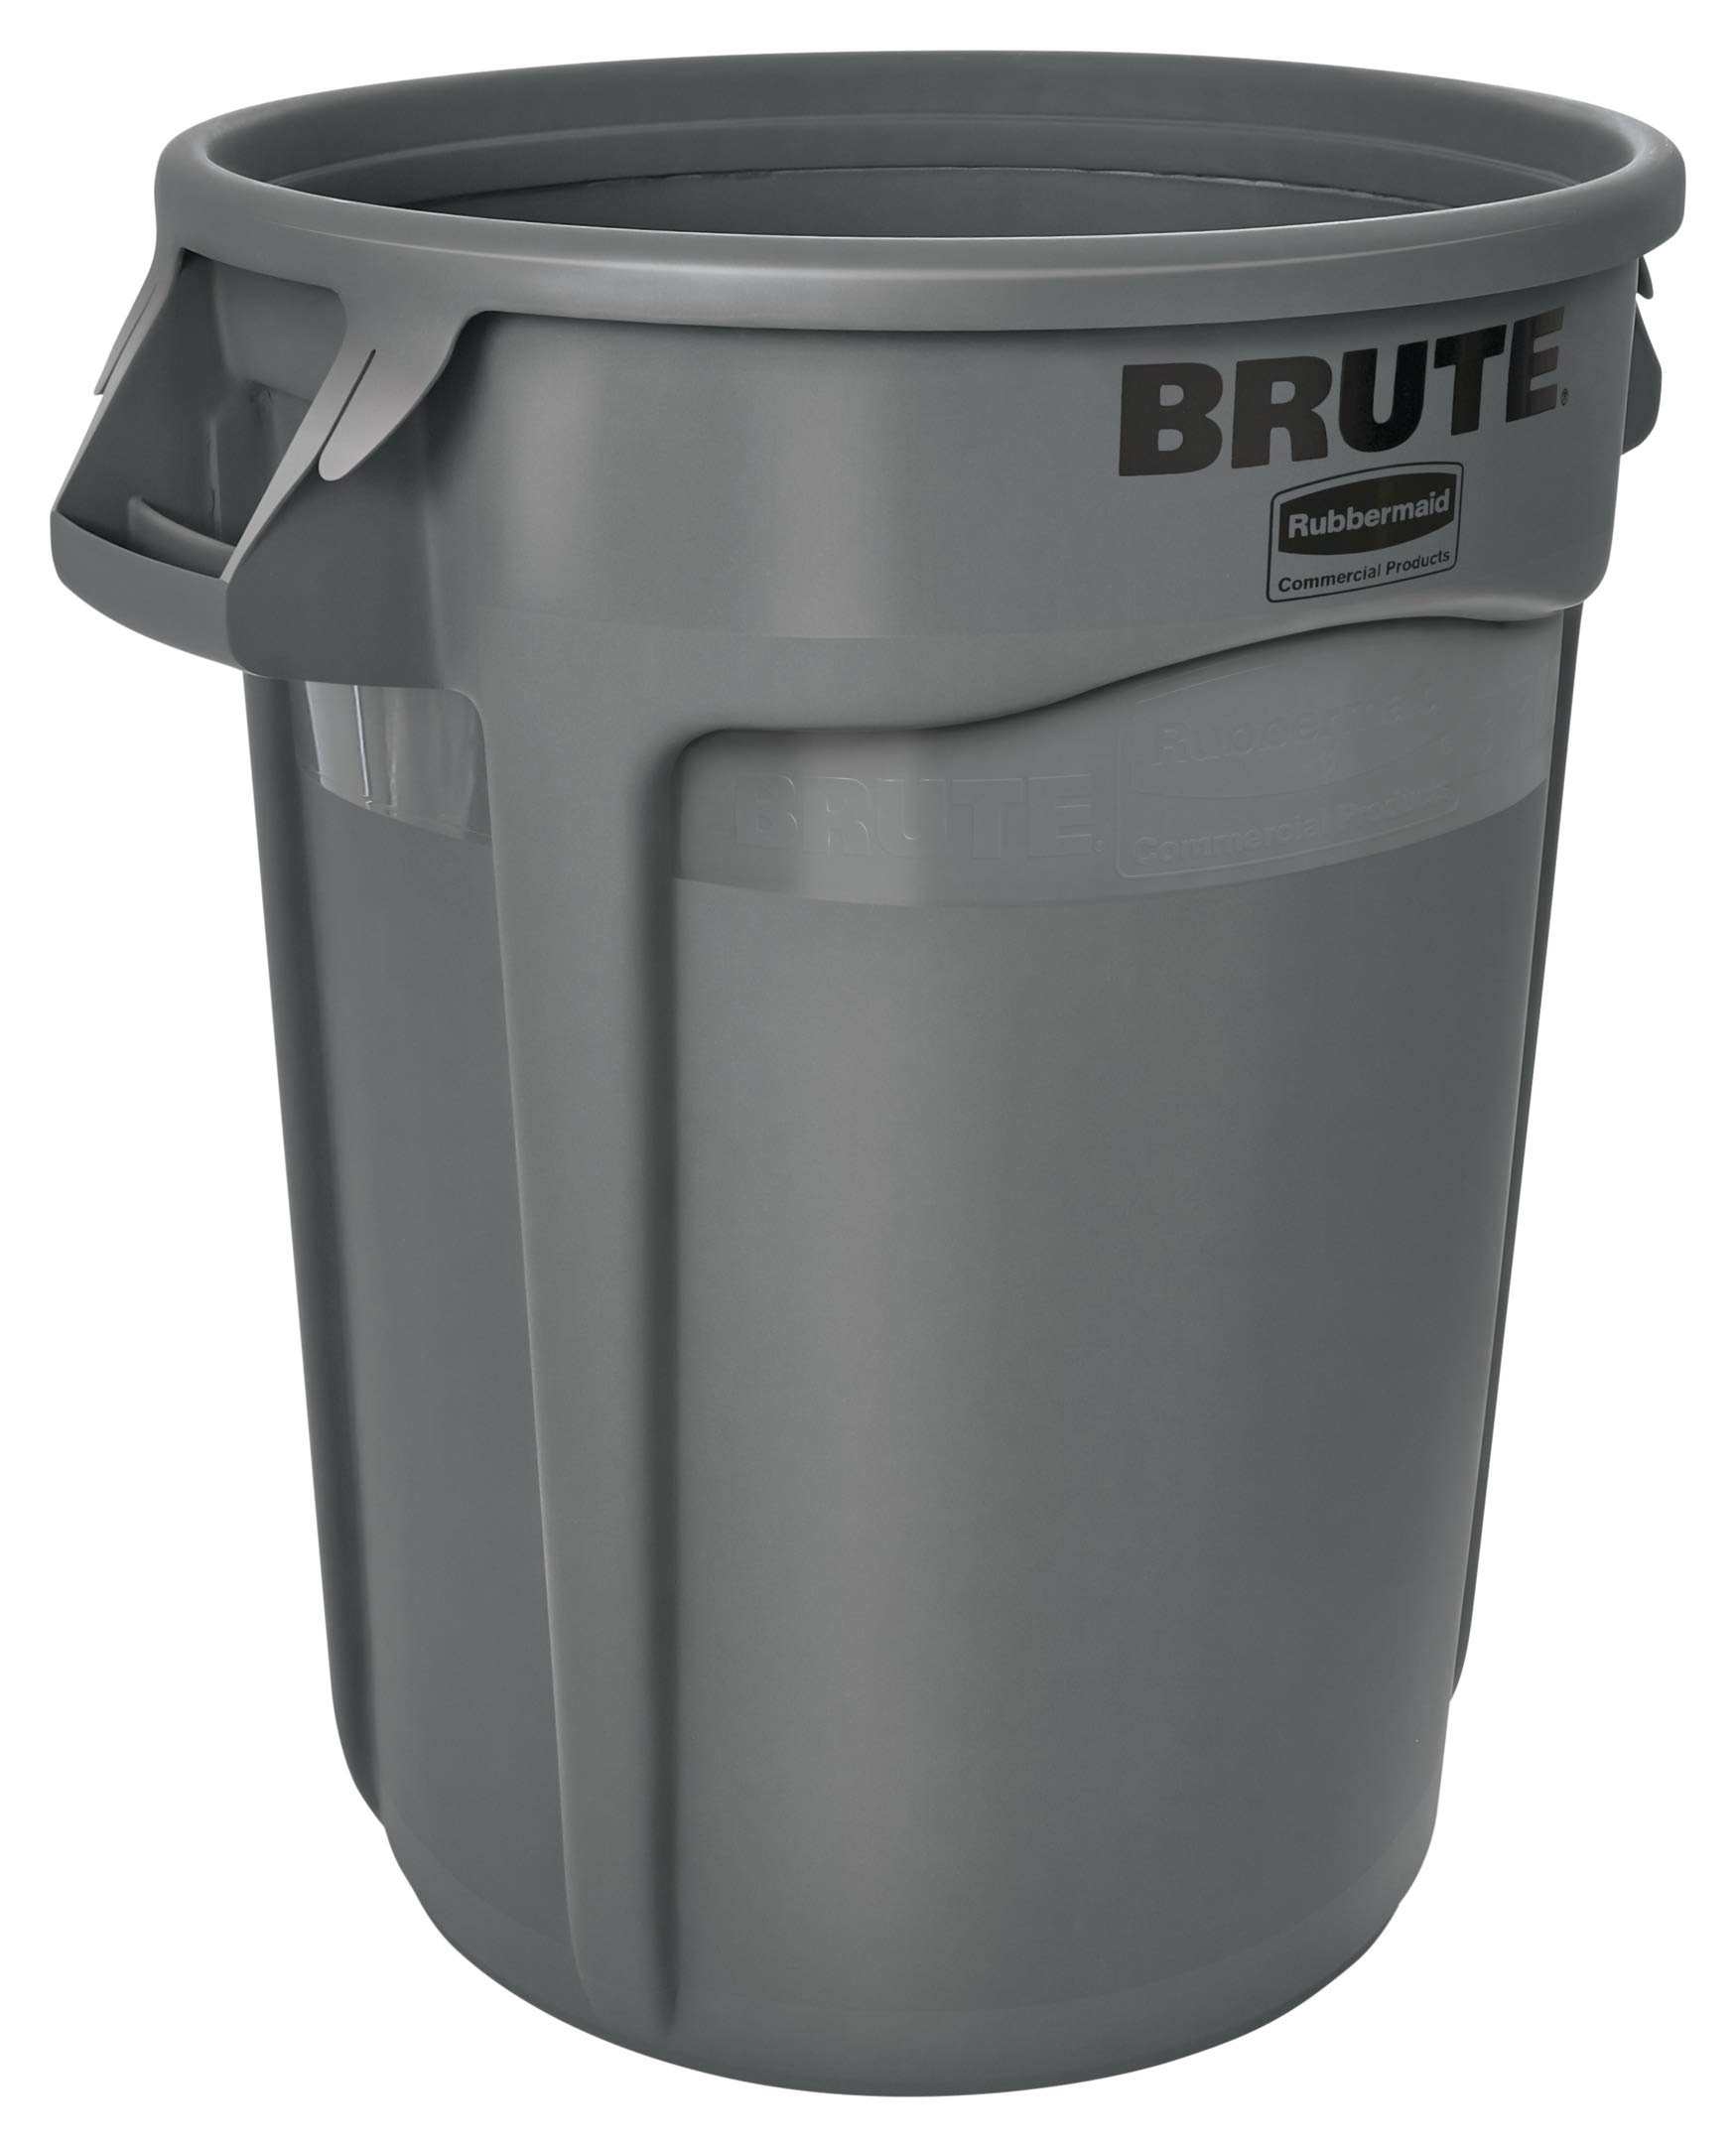 Rubbermaid Commercial Products BRUTE Heavy-Duty Trash/Garbage Can, 32 Gallon, Gray by Rubbermaid Commercial Products